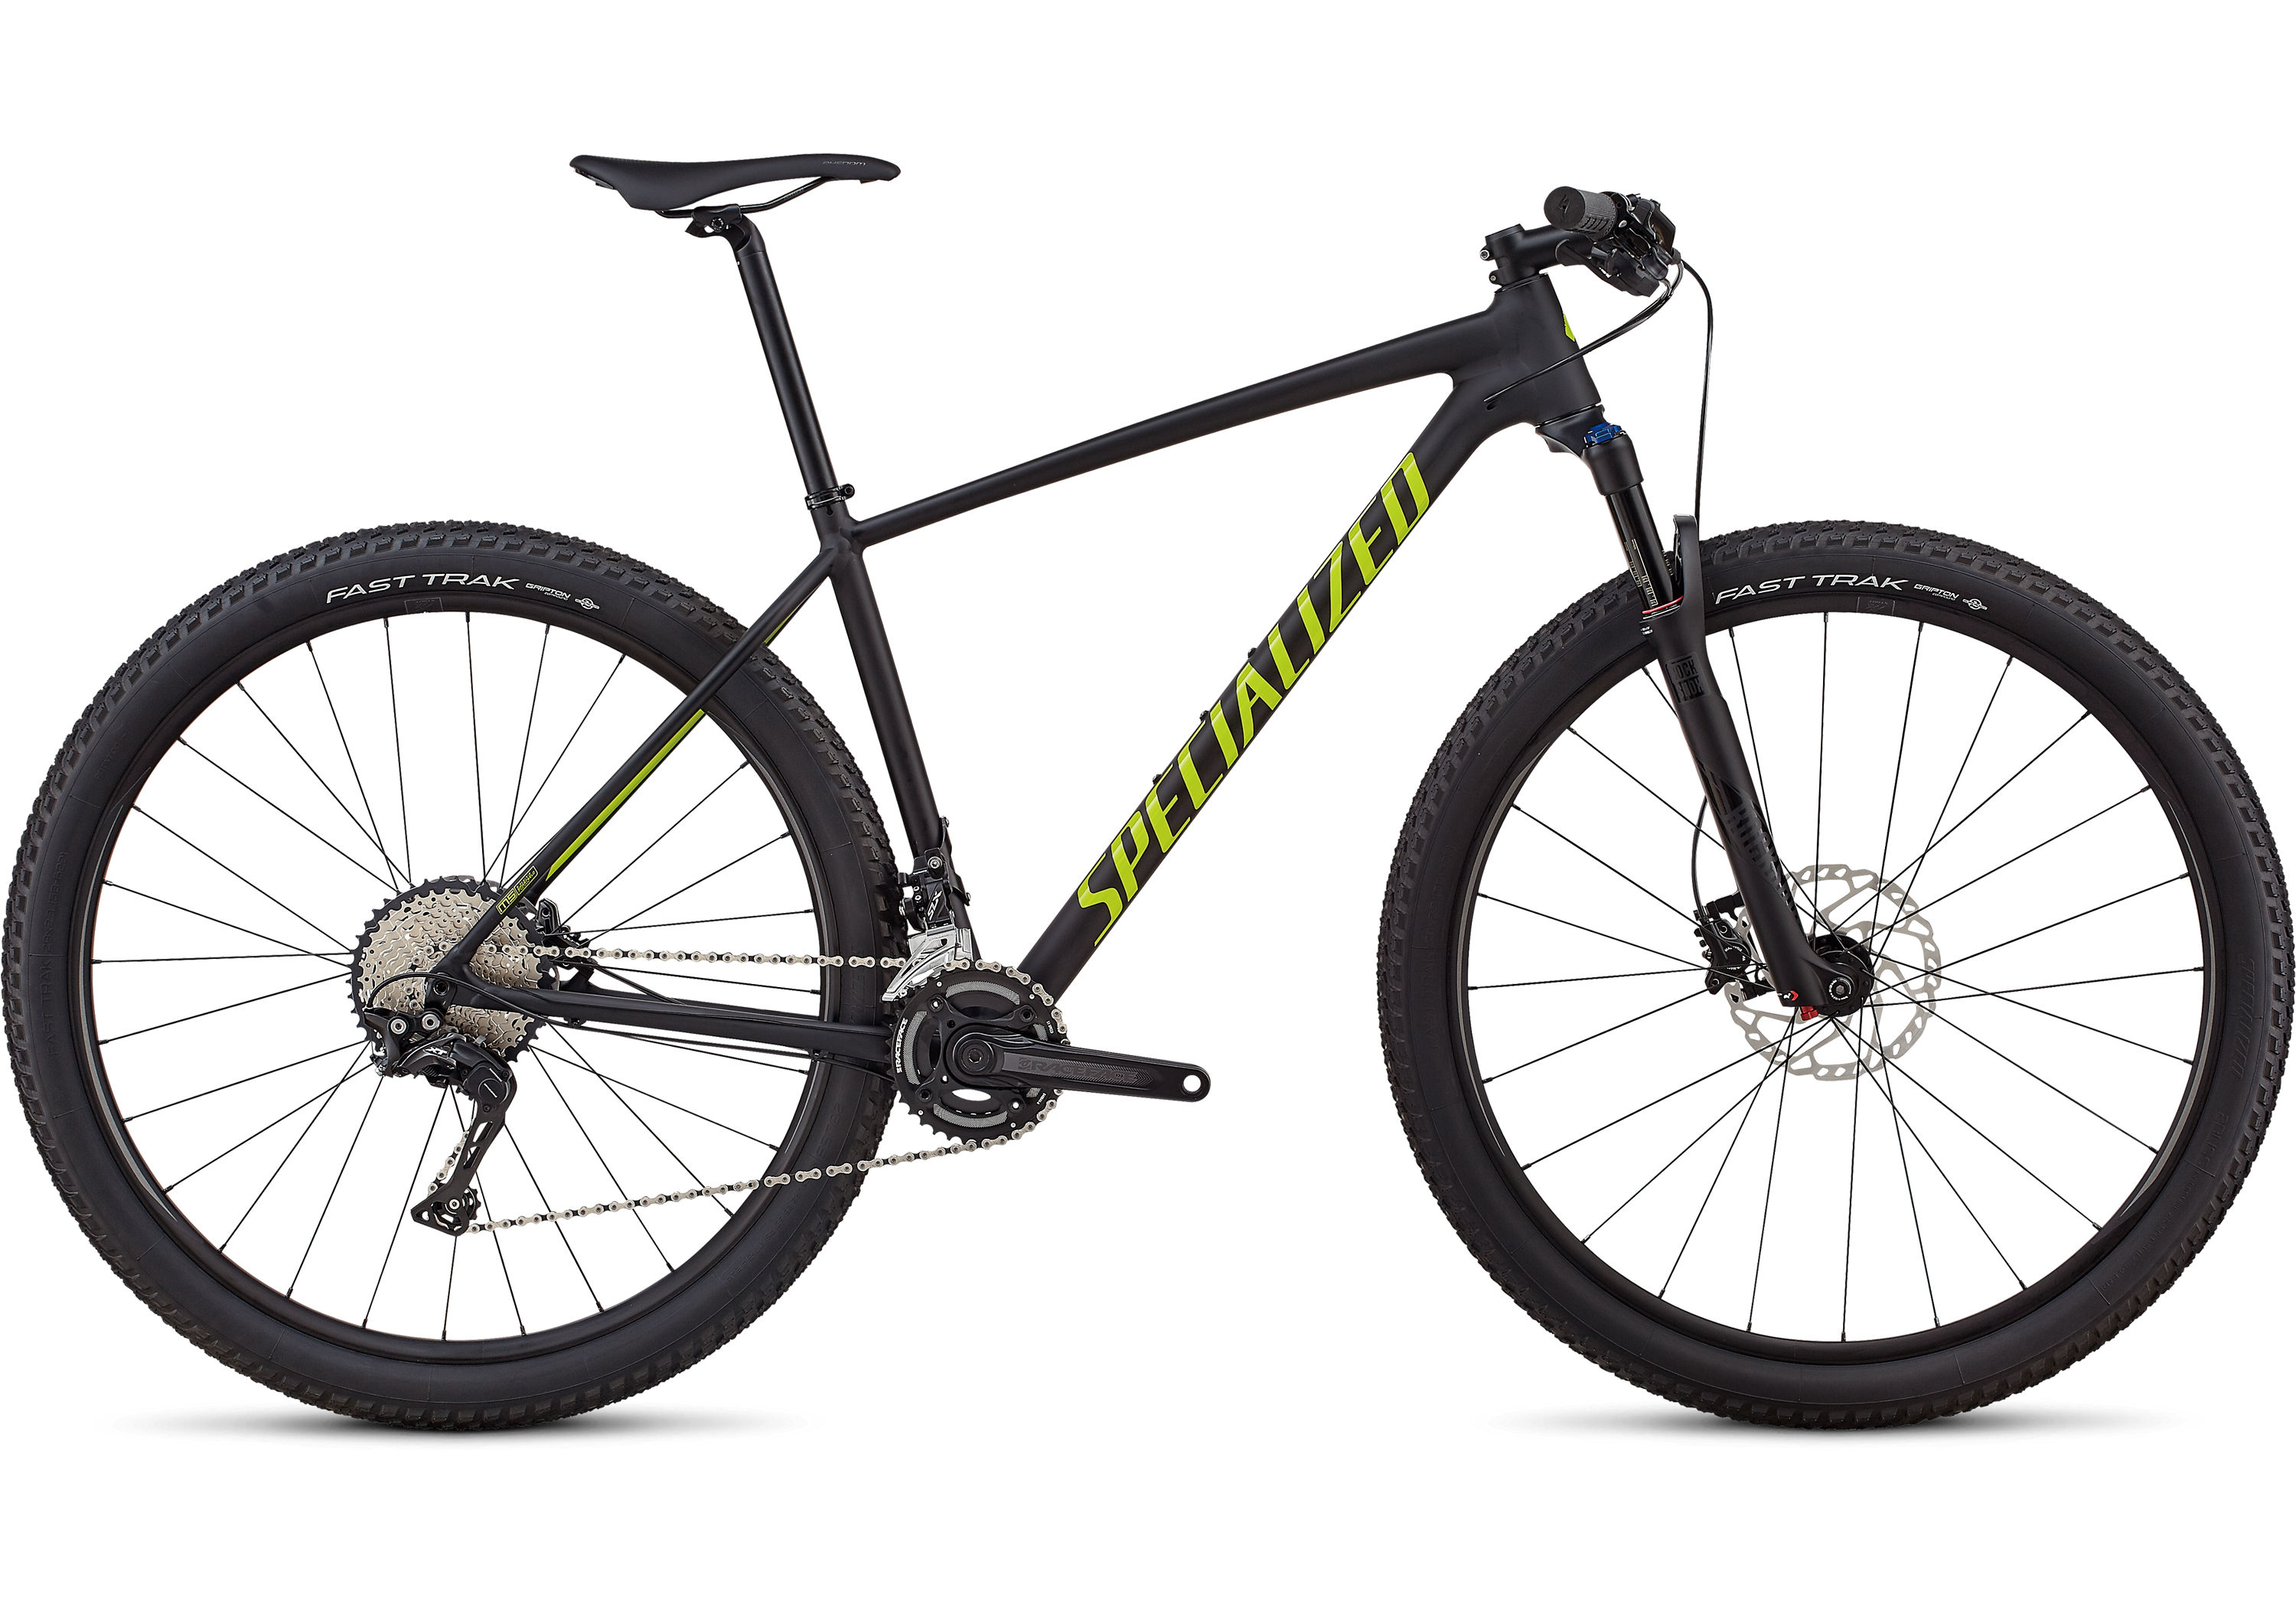 SPECIALIZED CHISEL EXPERT 2X 2018 OCASION